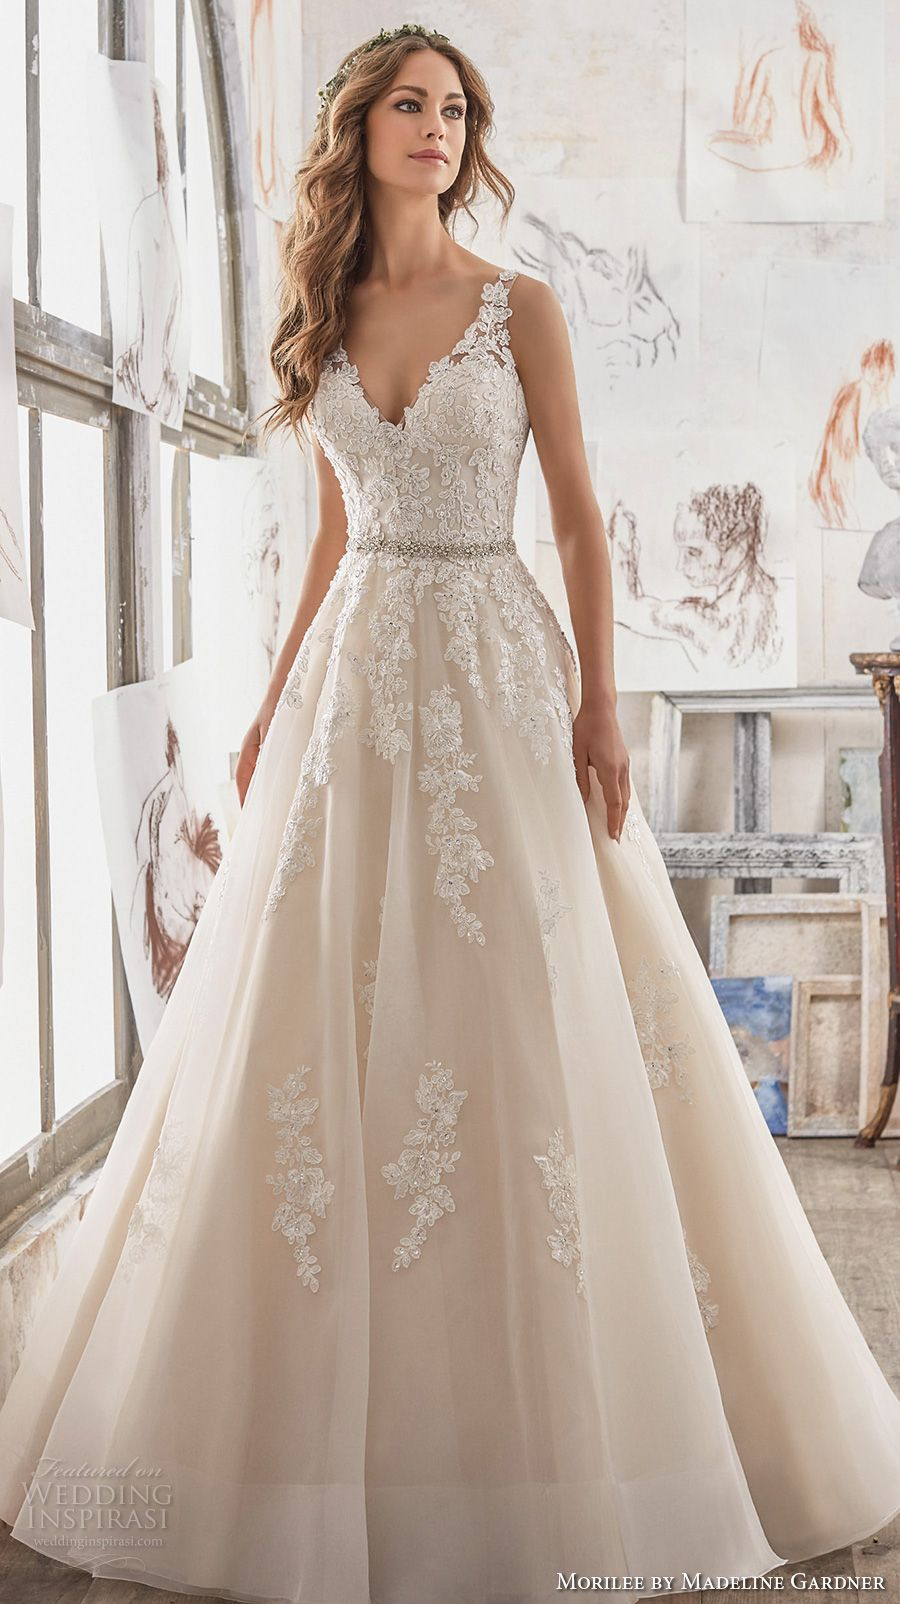 Morilee by madeline gardner spring 2017 wedding dresses for A line wedding dresses 2017